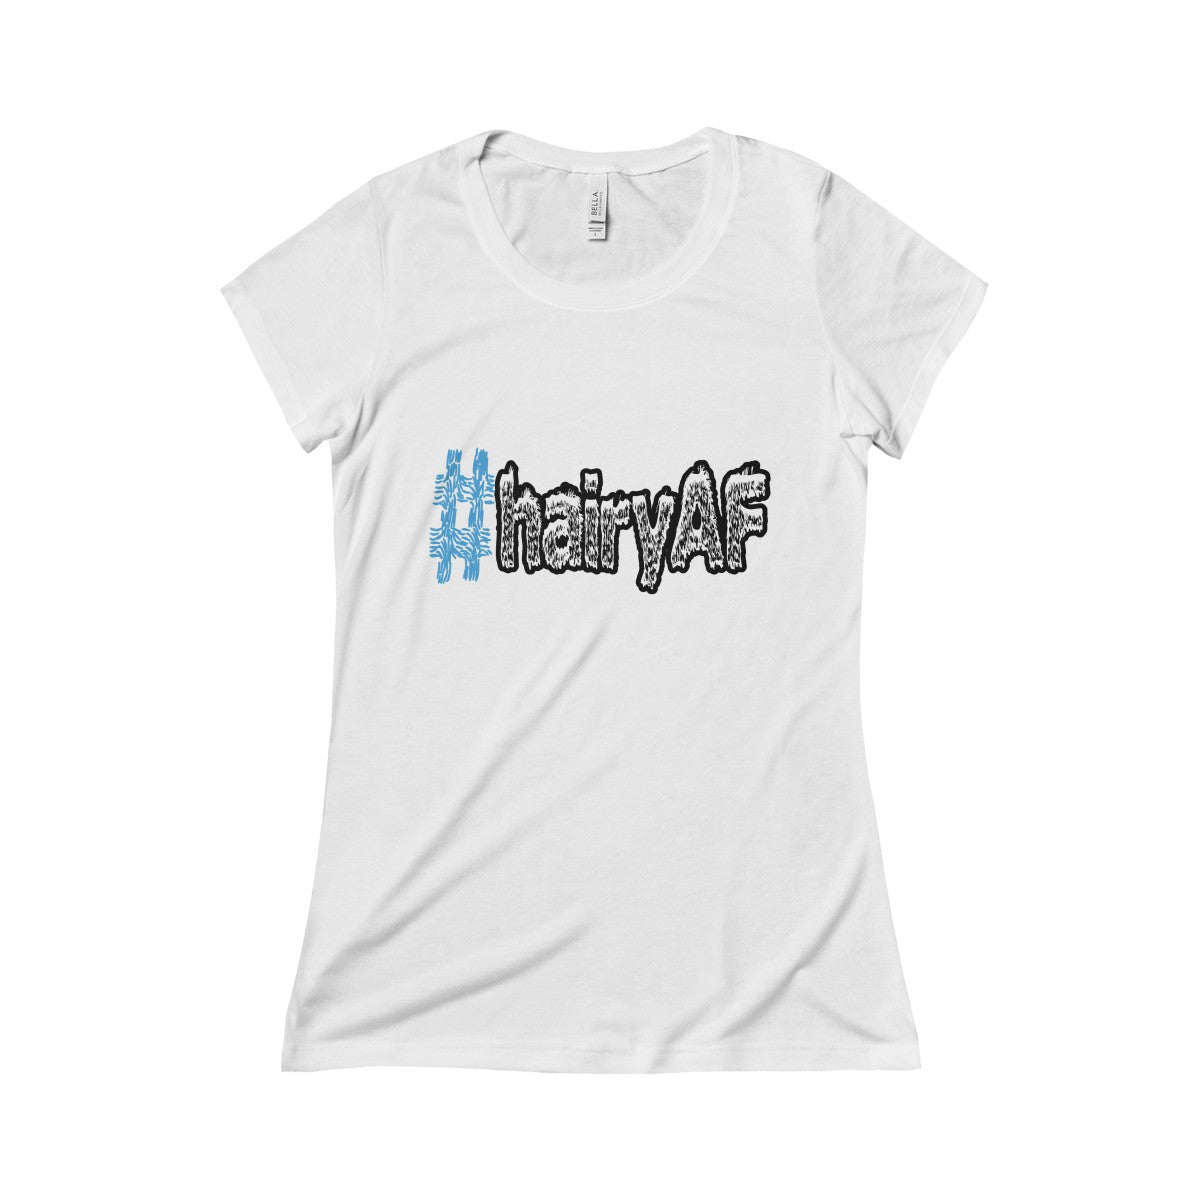 hairyAF hashtag #hairyAF women's t-shirt Nerdedness